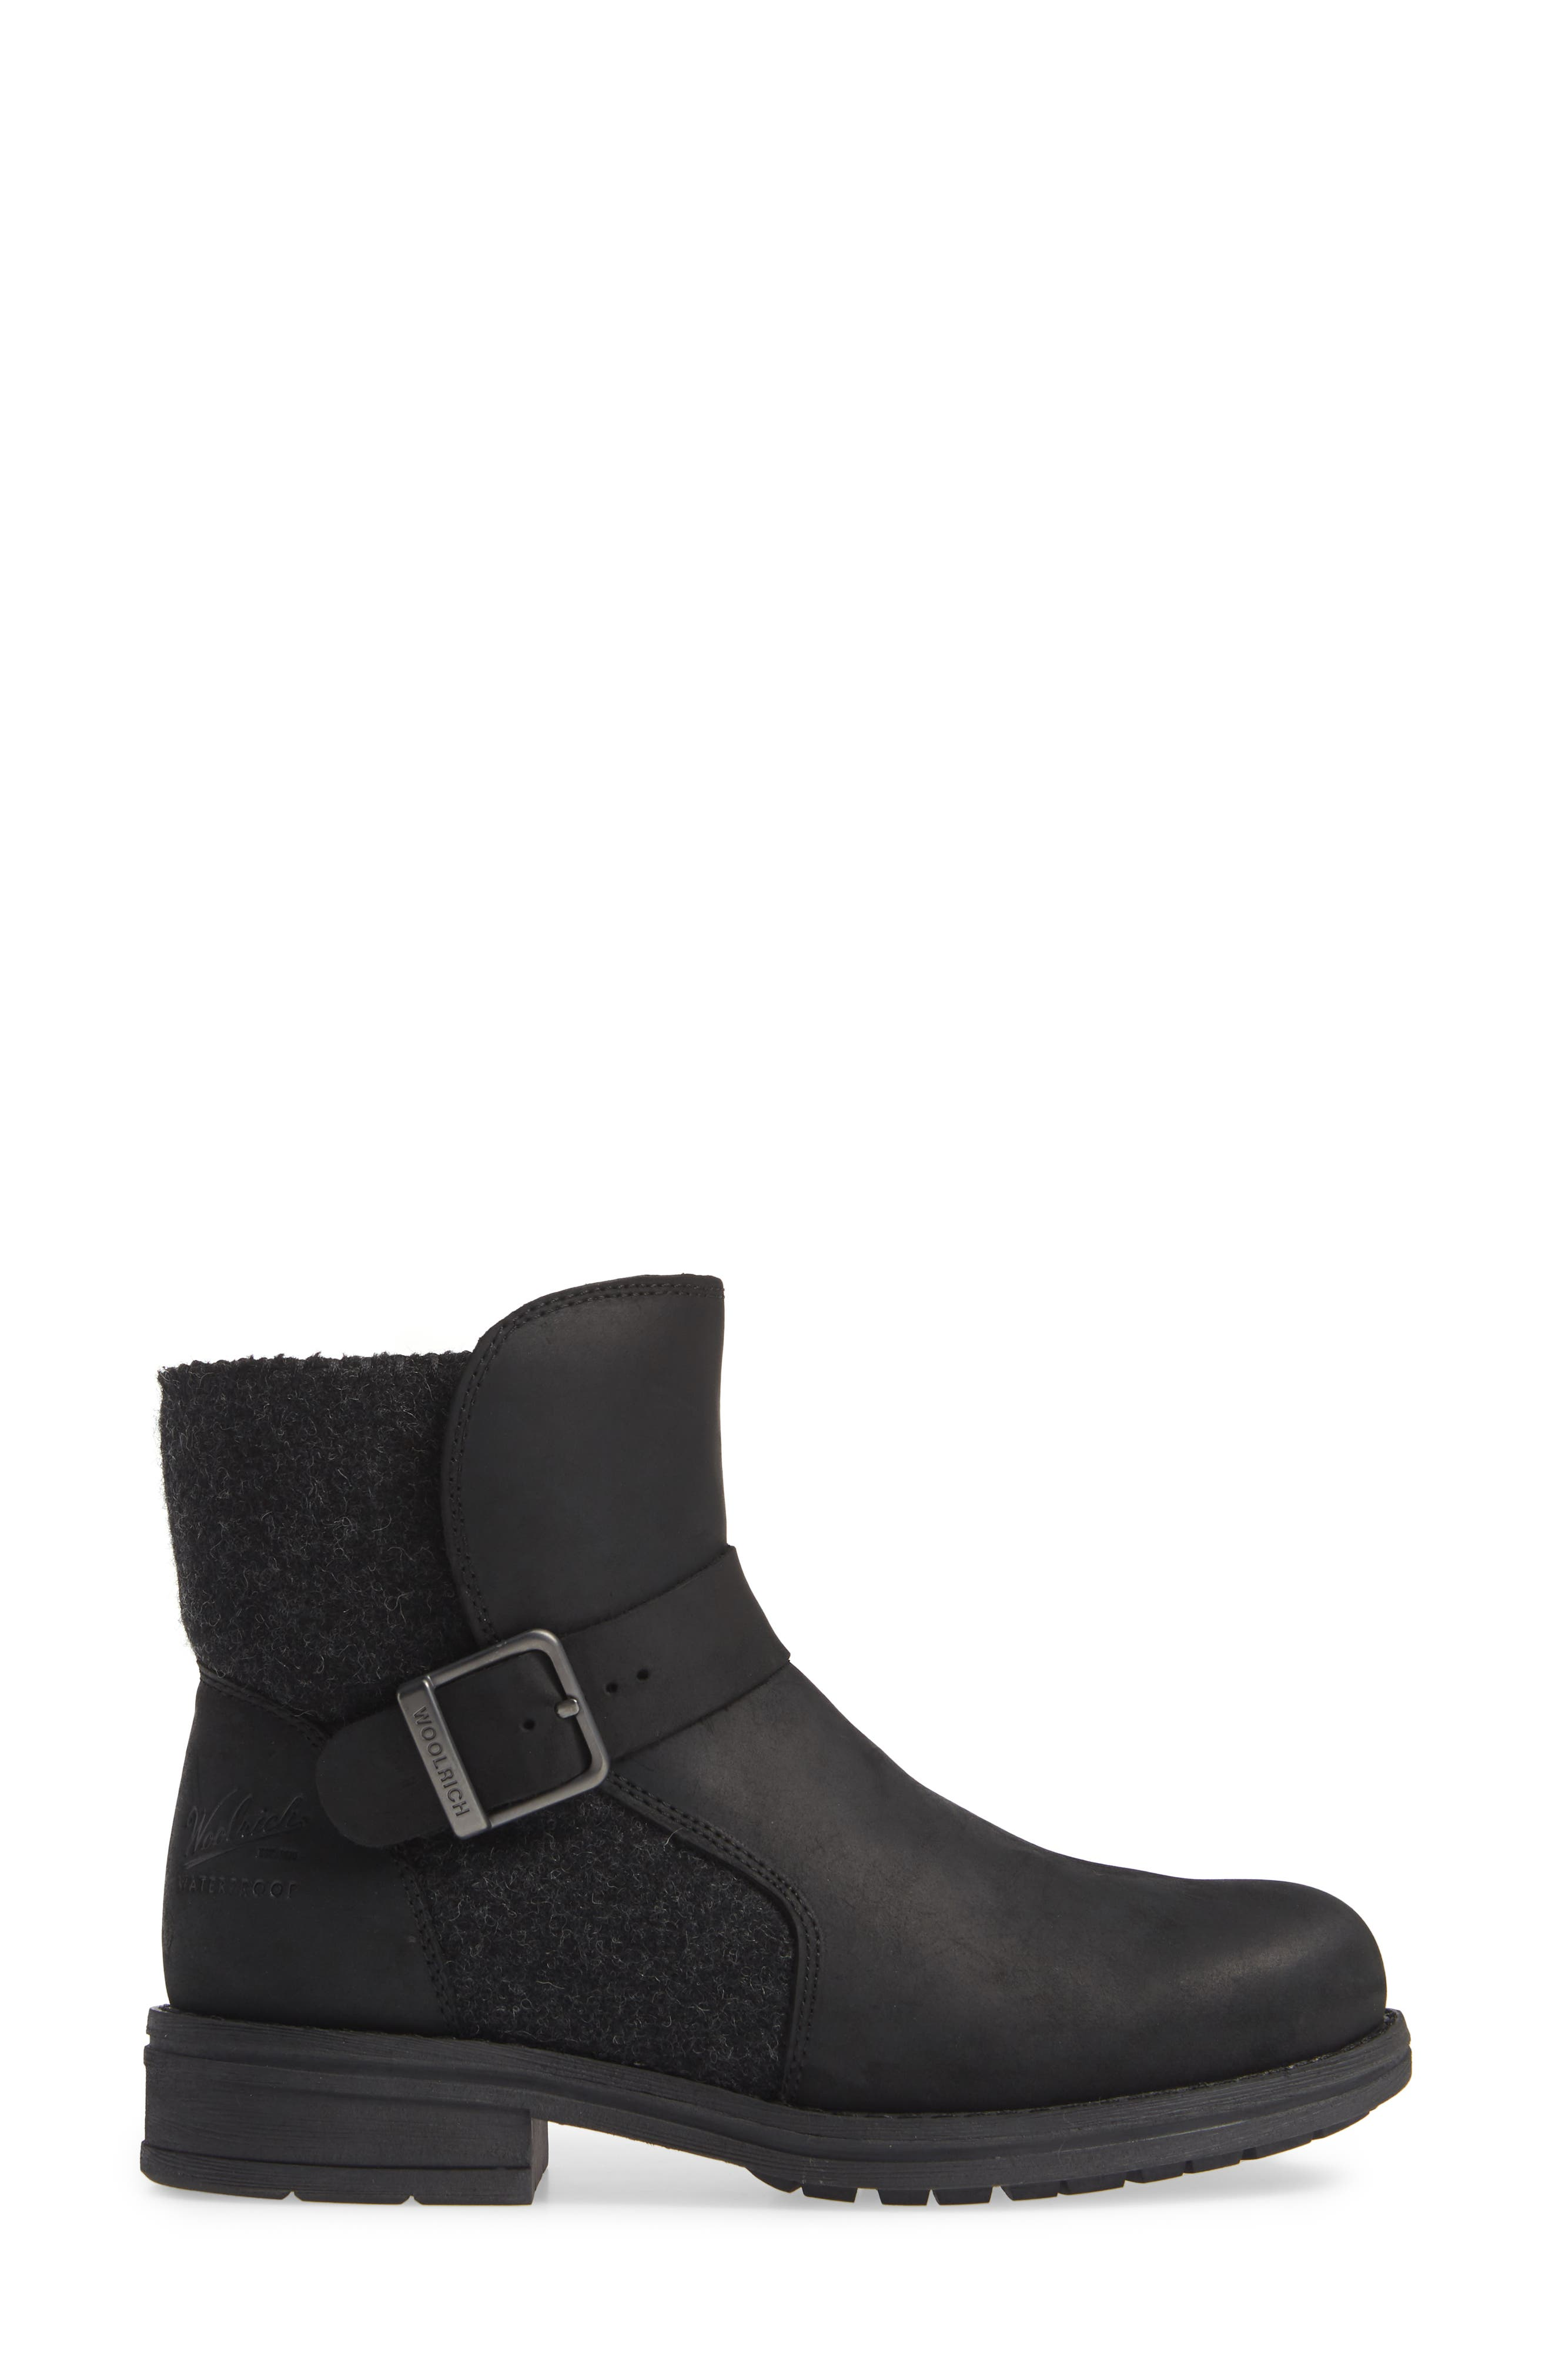 Pioneer Bootie,                             Alternate thumbnail 3, color,                             BLACK LEATHER